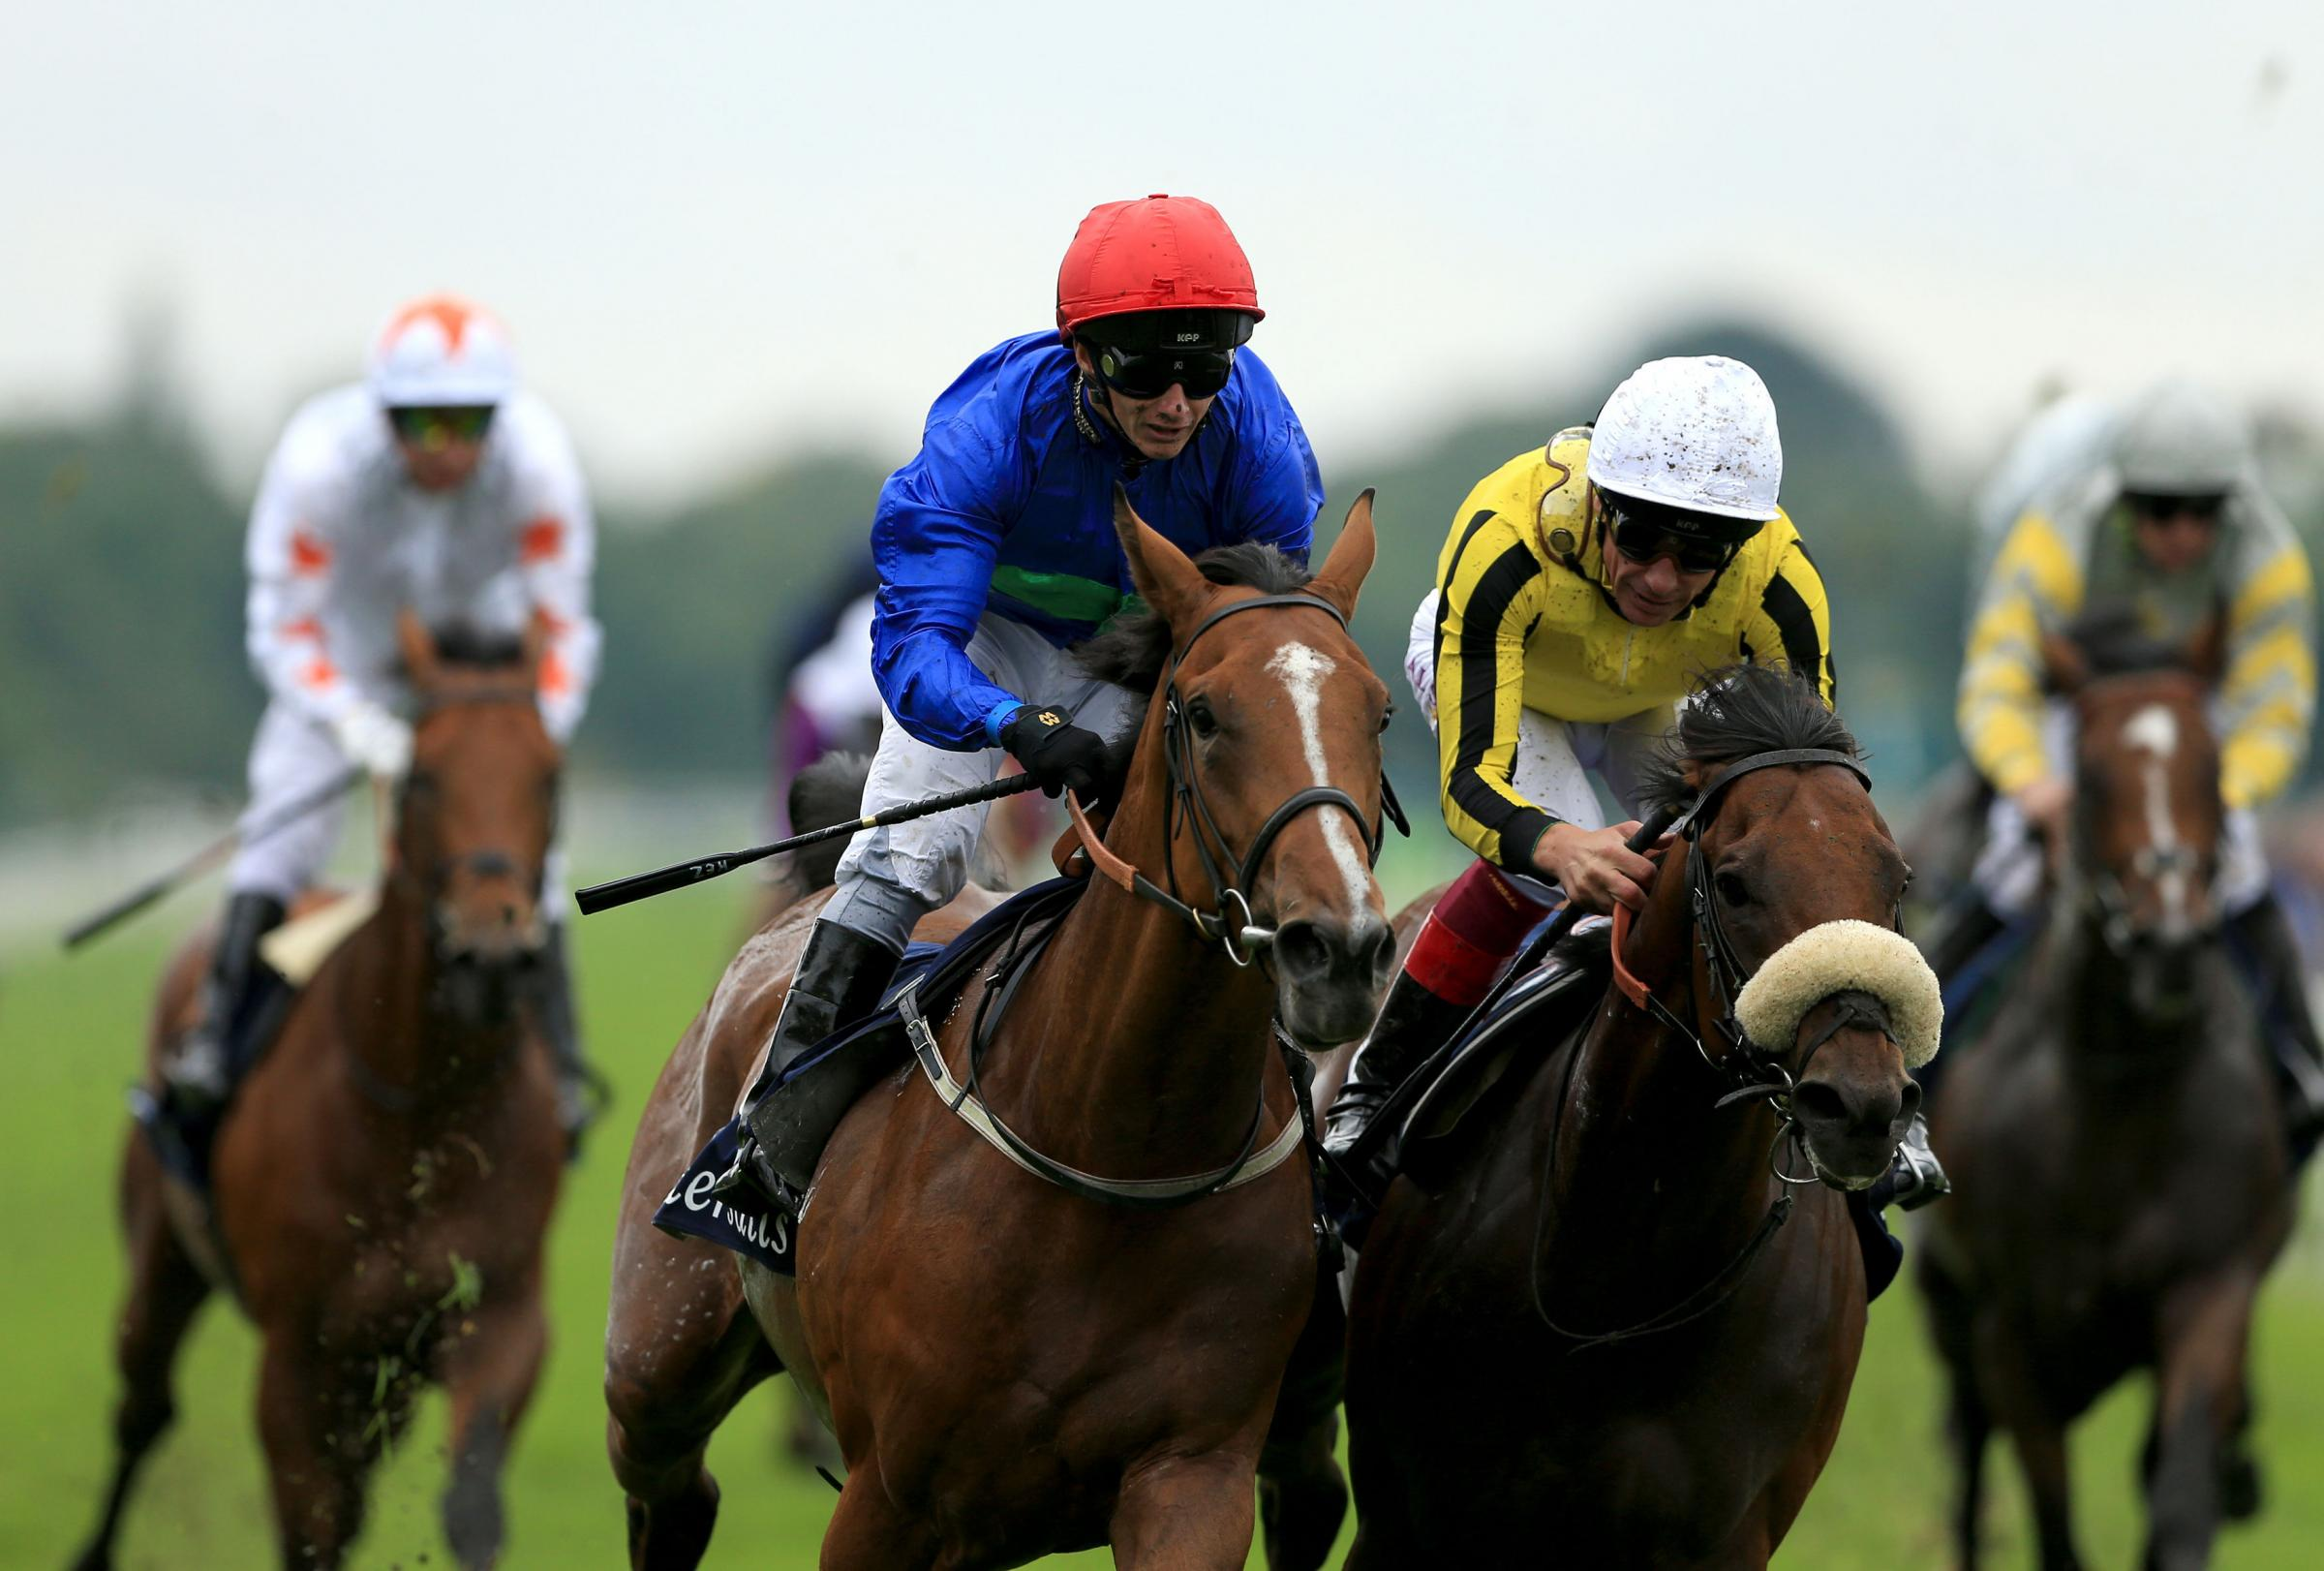 GO FOR GLORY: Wells Farhh Go, left, ridden by David Allan, wins the Tattersalls Acomb Stakes ahead of James Garfield ridden by Frankie Dettori during the Juddmonte International Day of the Yorkshire Ebor Festival at York last August. Picture: Tim Goode/PA